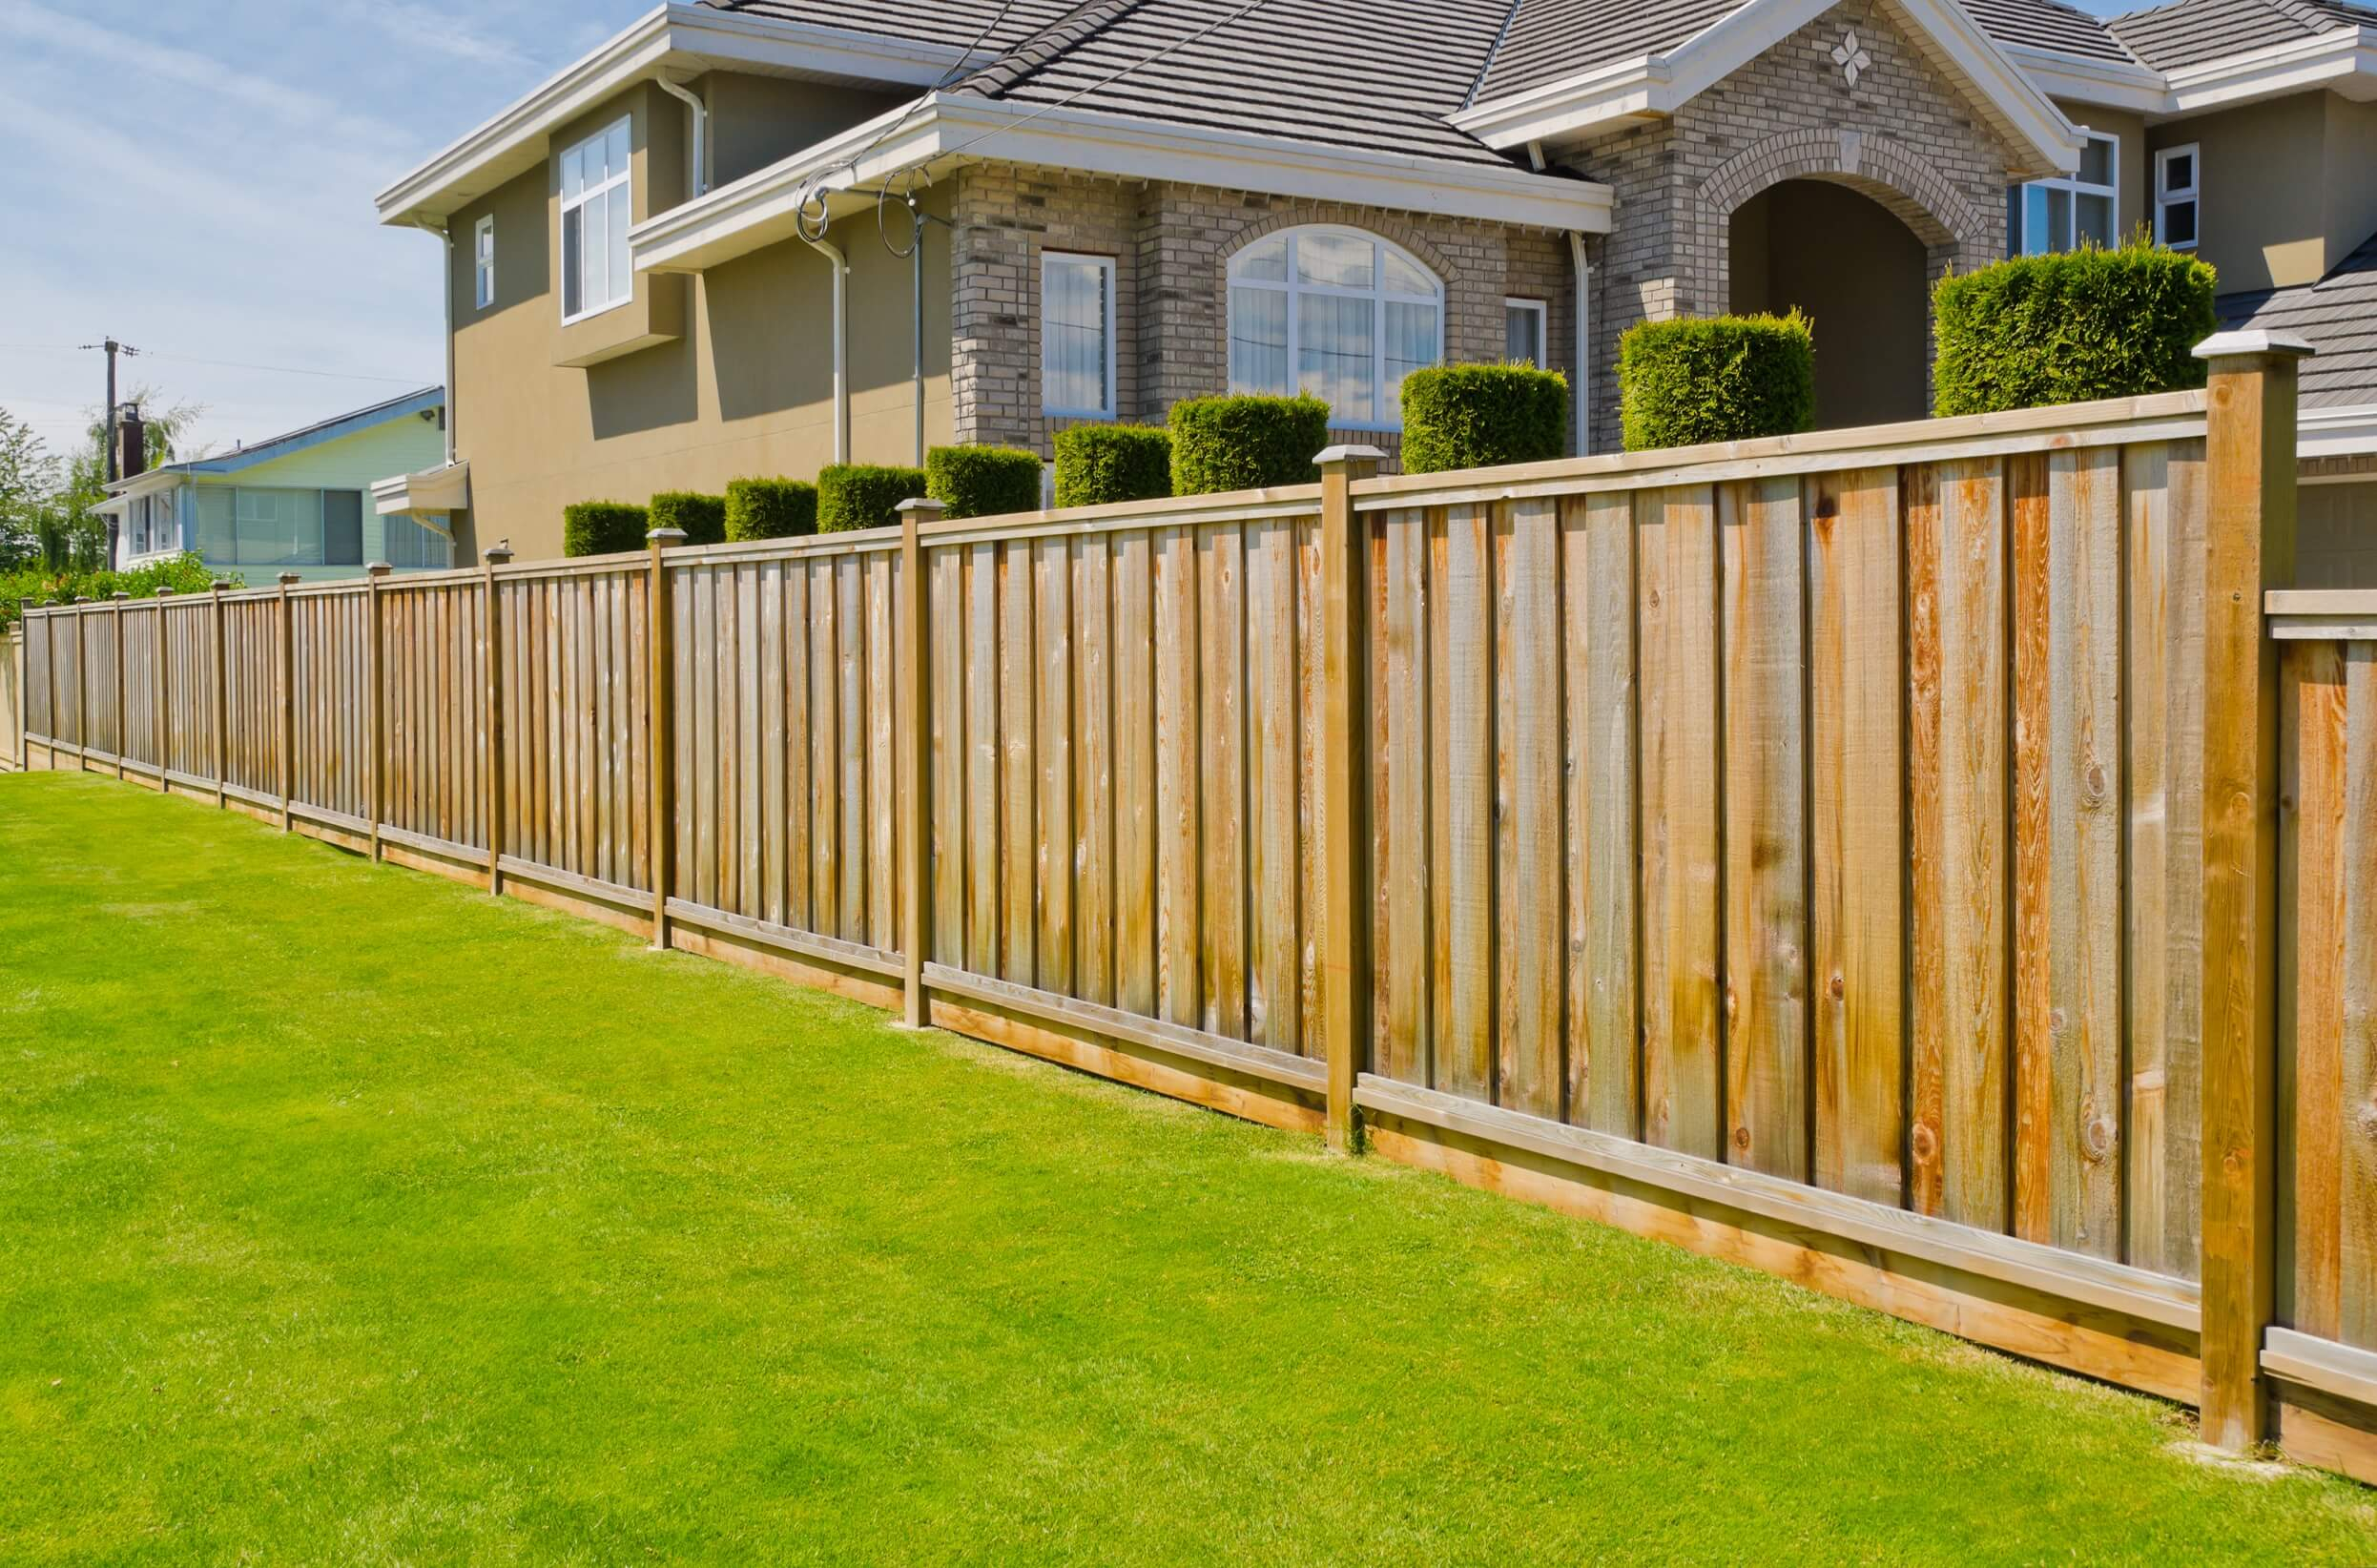 Fencing Installation Services Spring Hill Fl Bush Home Services with 13 Awesome Ways How to Makeover Backyard Fencing Options